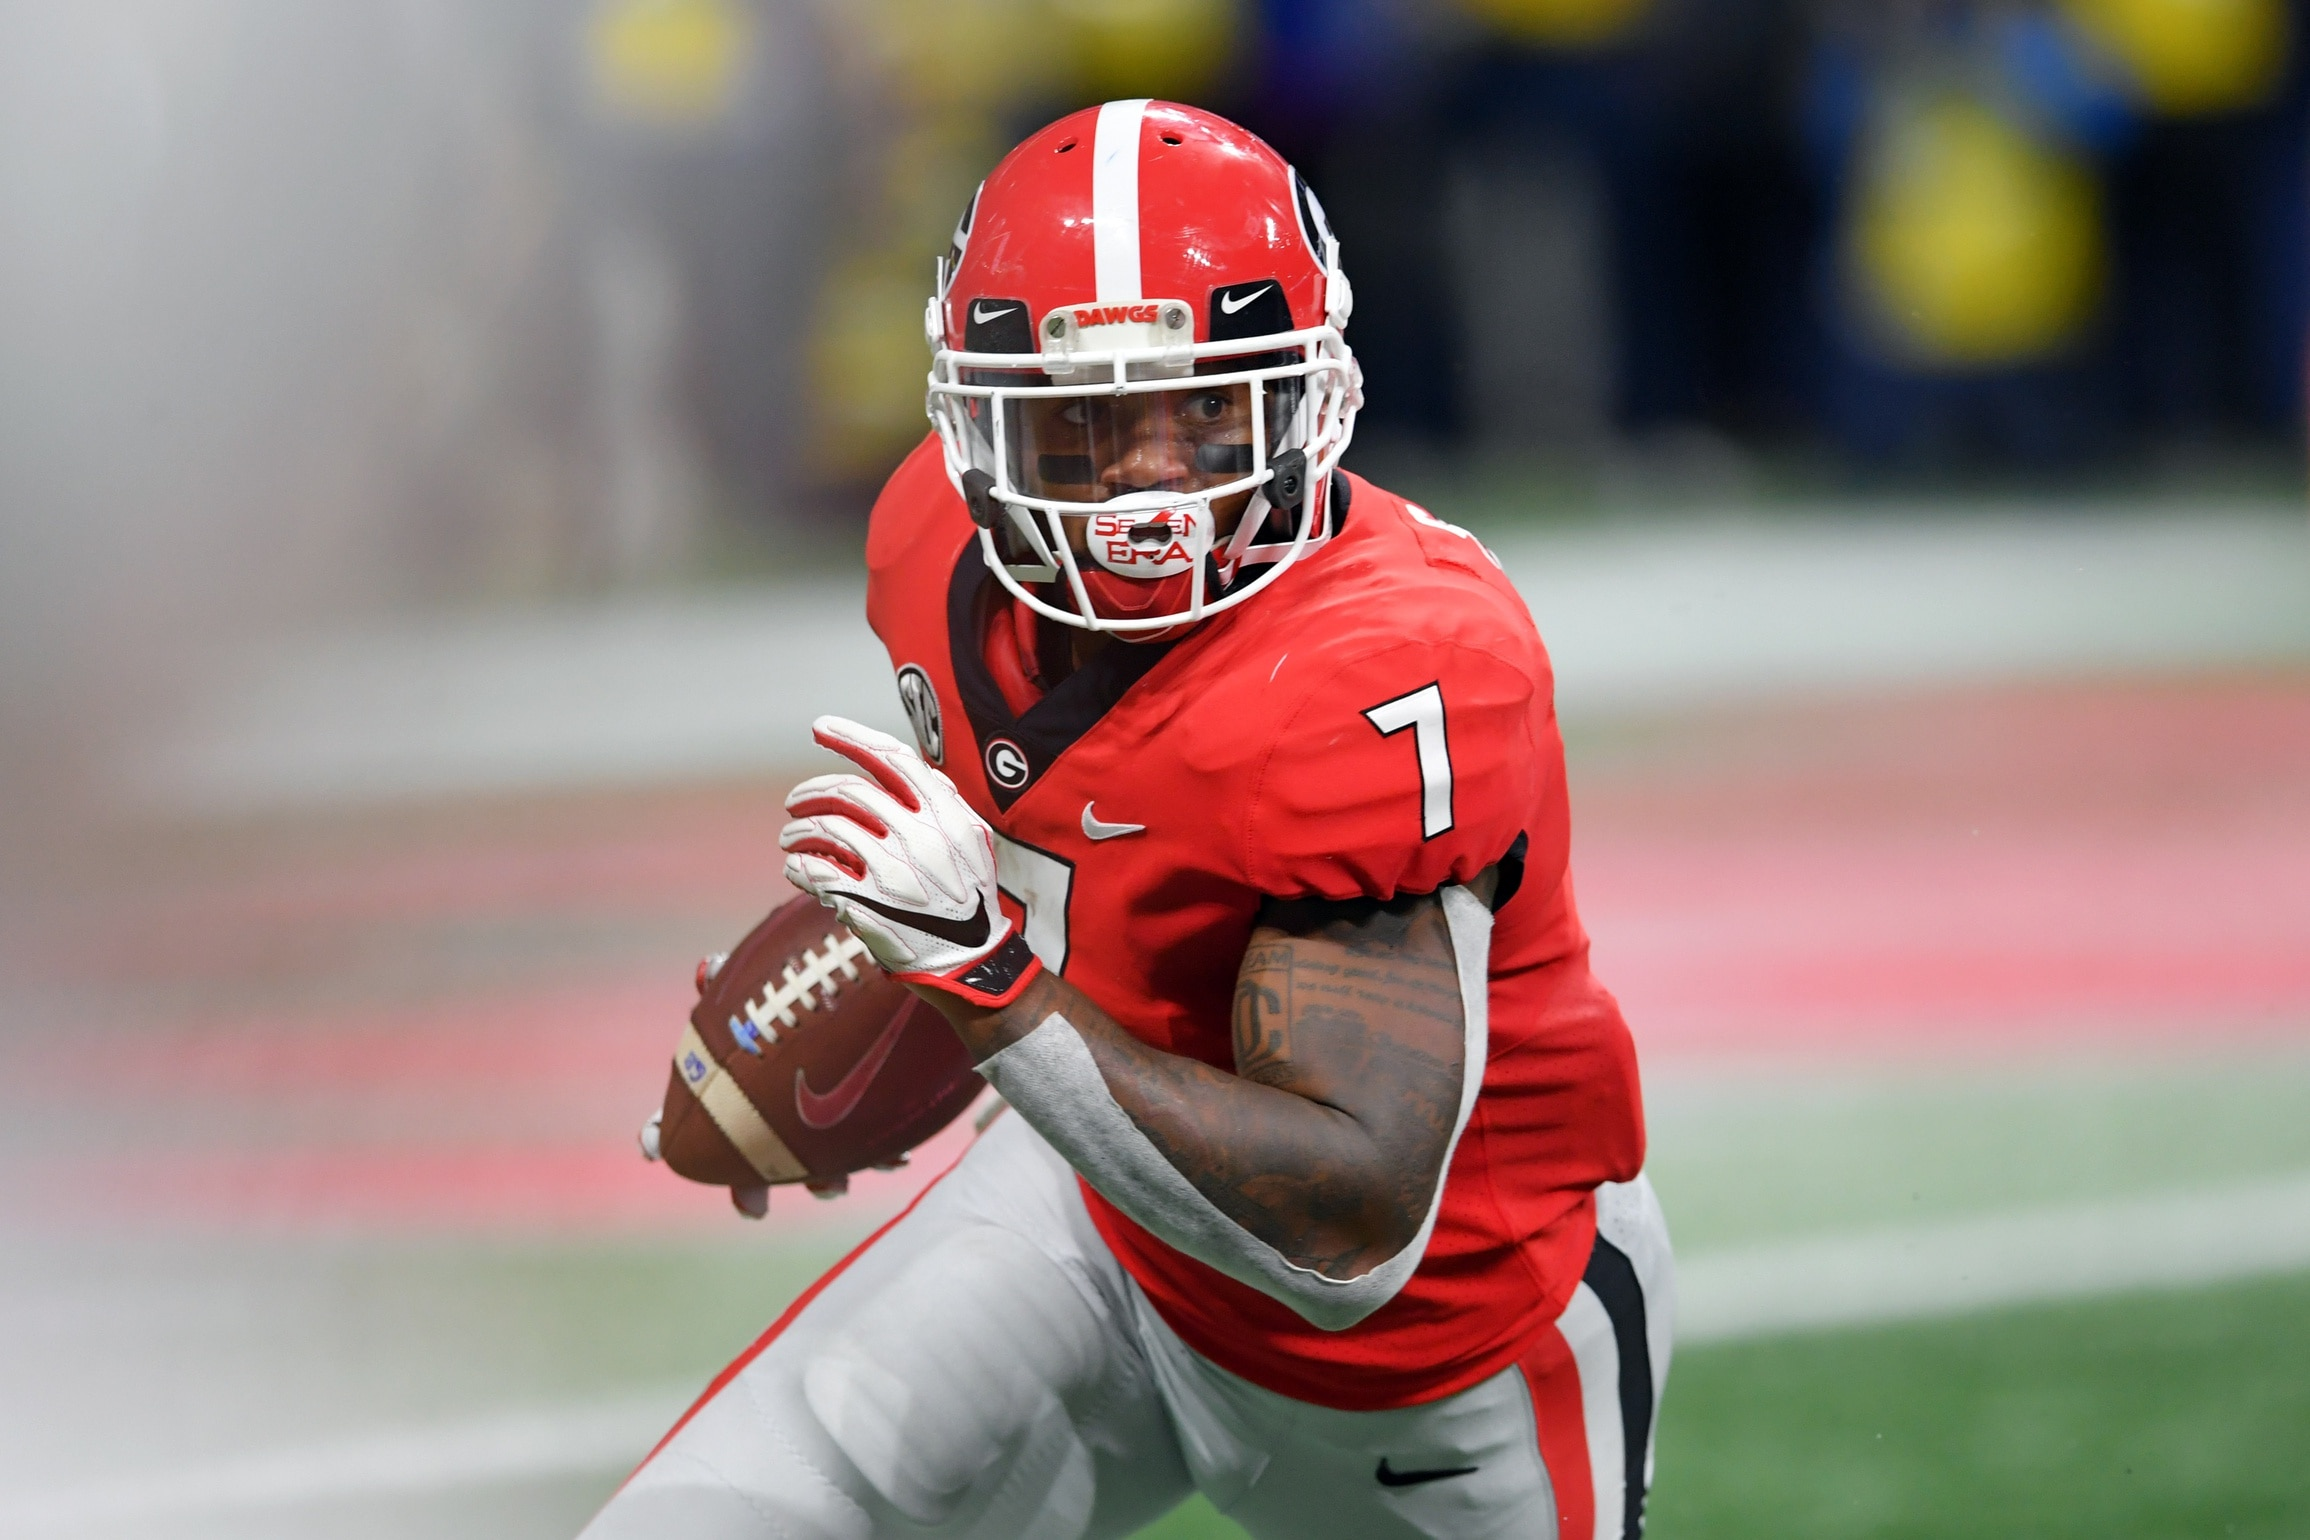 Uga Football Schedule 2020 Printable.2019 Georgia Football Schedule Dates Times Opponents